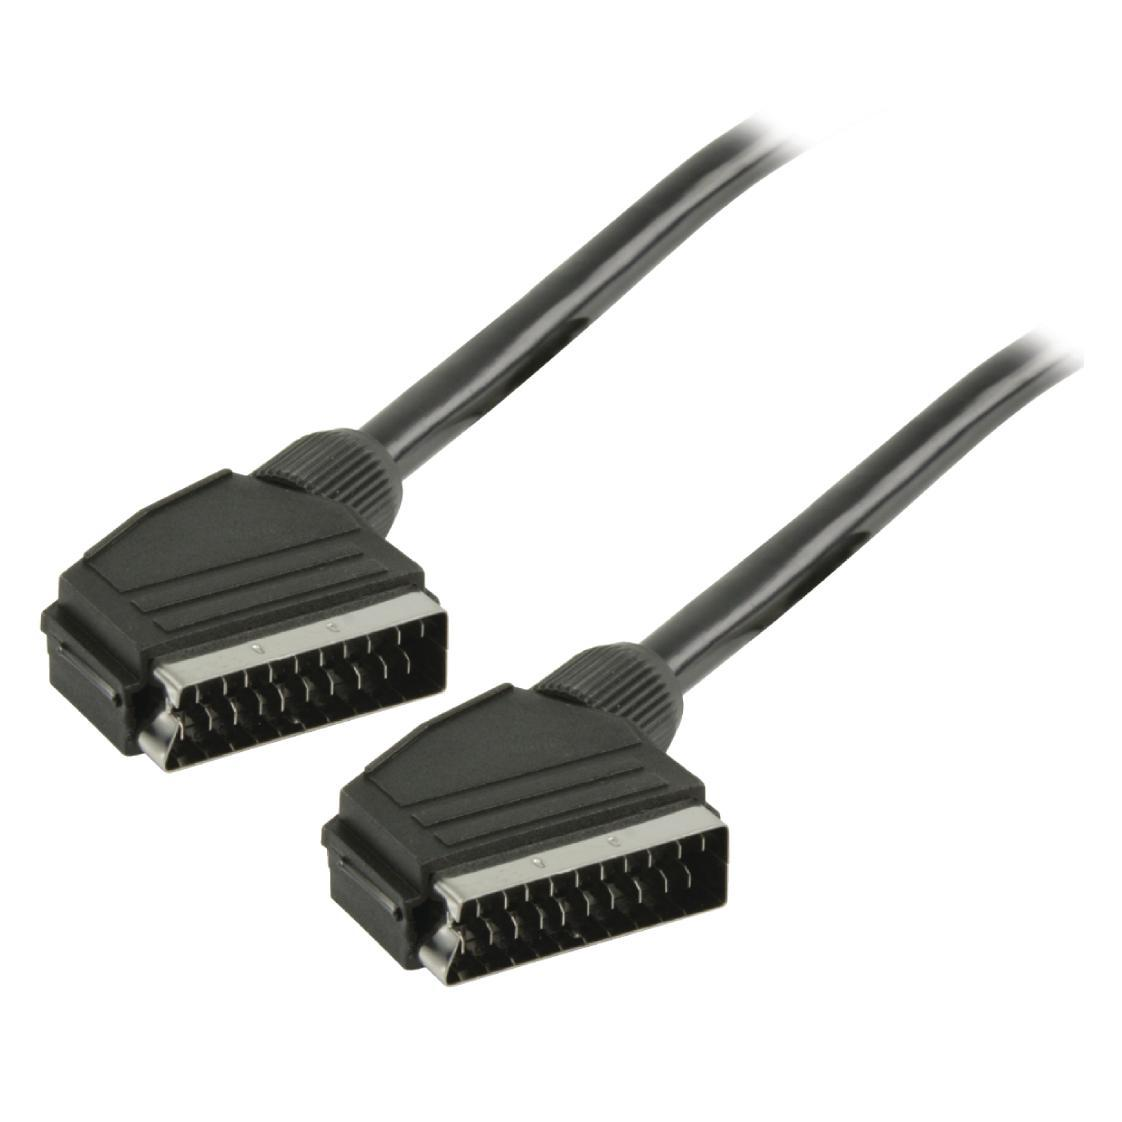 Image of Scart Kabel Male-male 2m